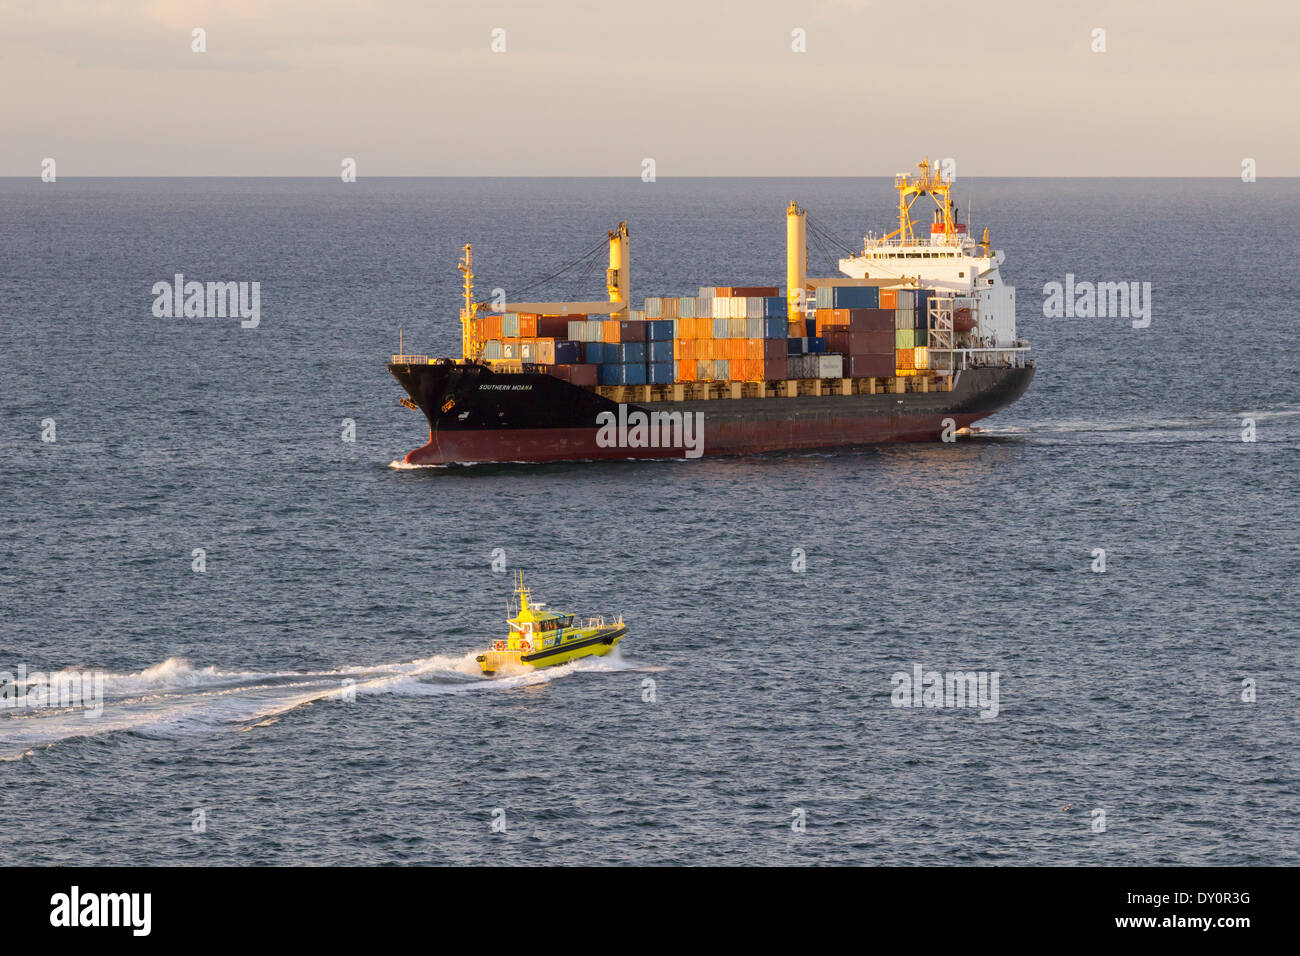 Cargo container ship with yellow pilot boat approaching at dusk - Stock Image